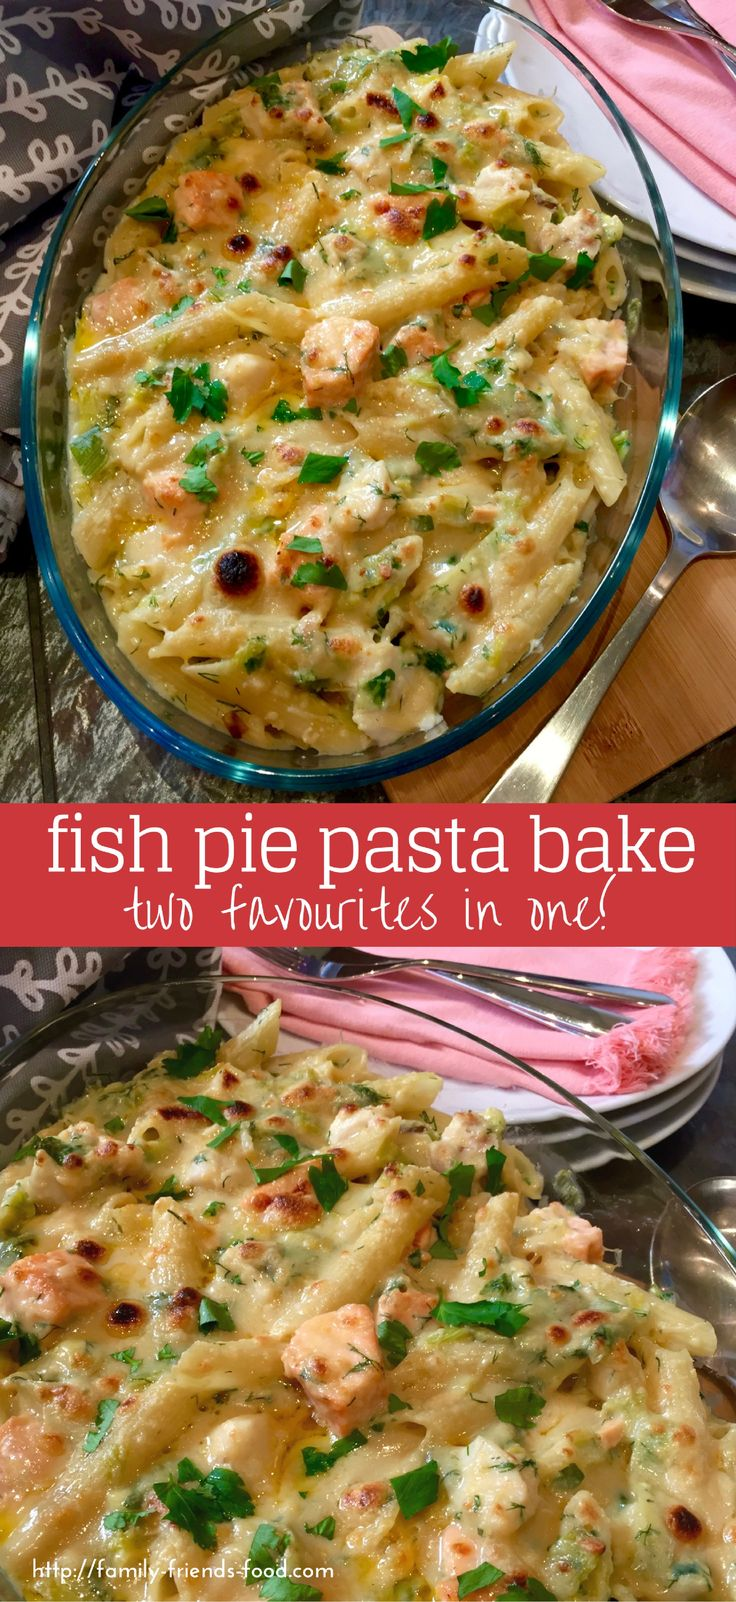 Fish pie pasta bake combines the comforting creamy filling of a great fish pie with everyone's favourite golden-cheesy-topped pasta bake. Perfect!